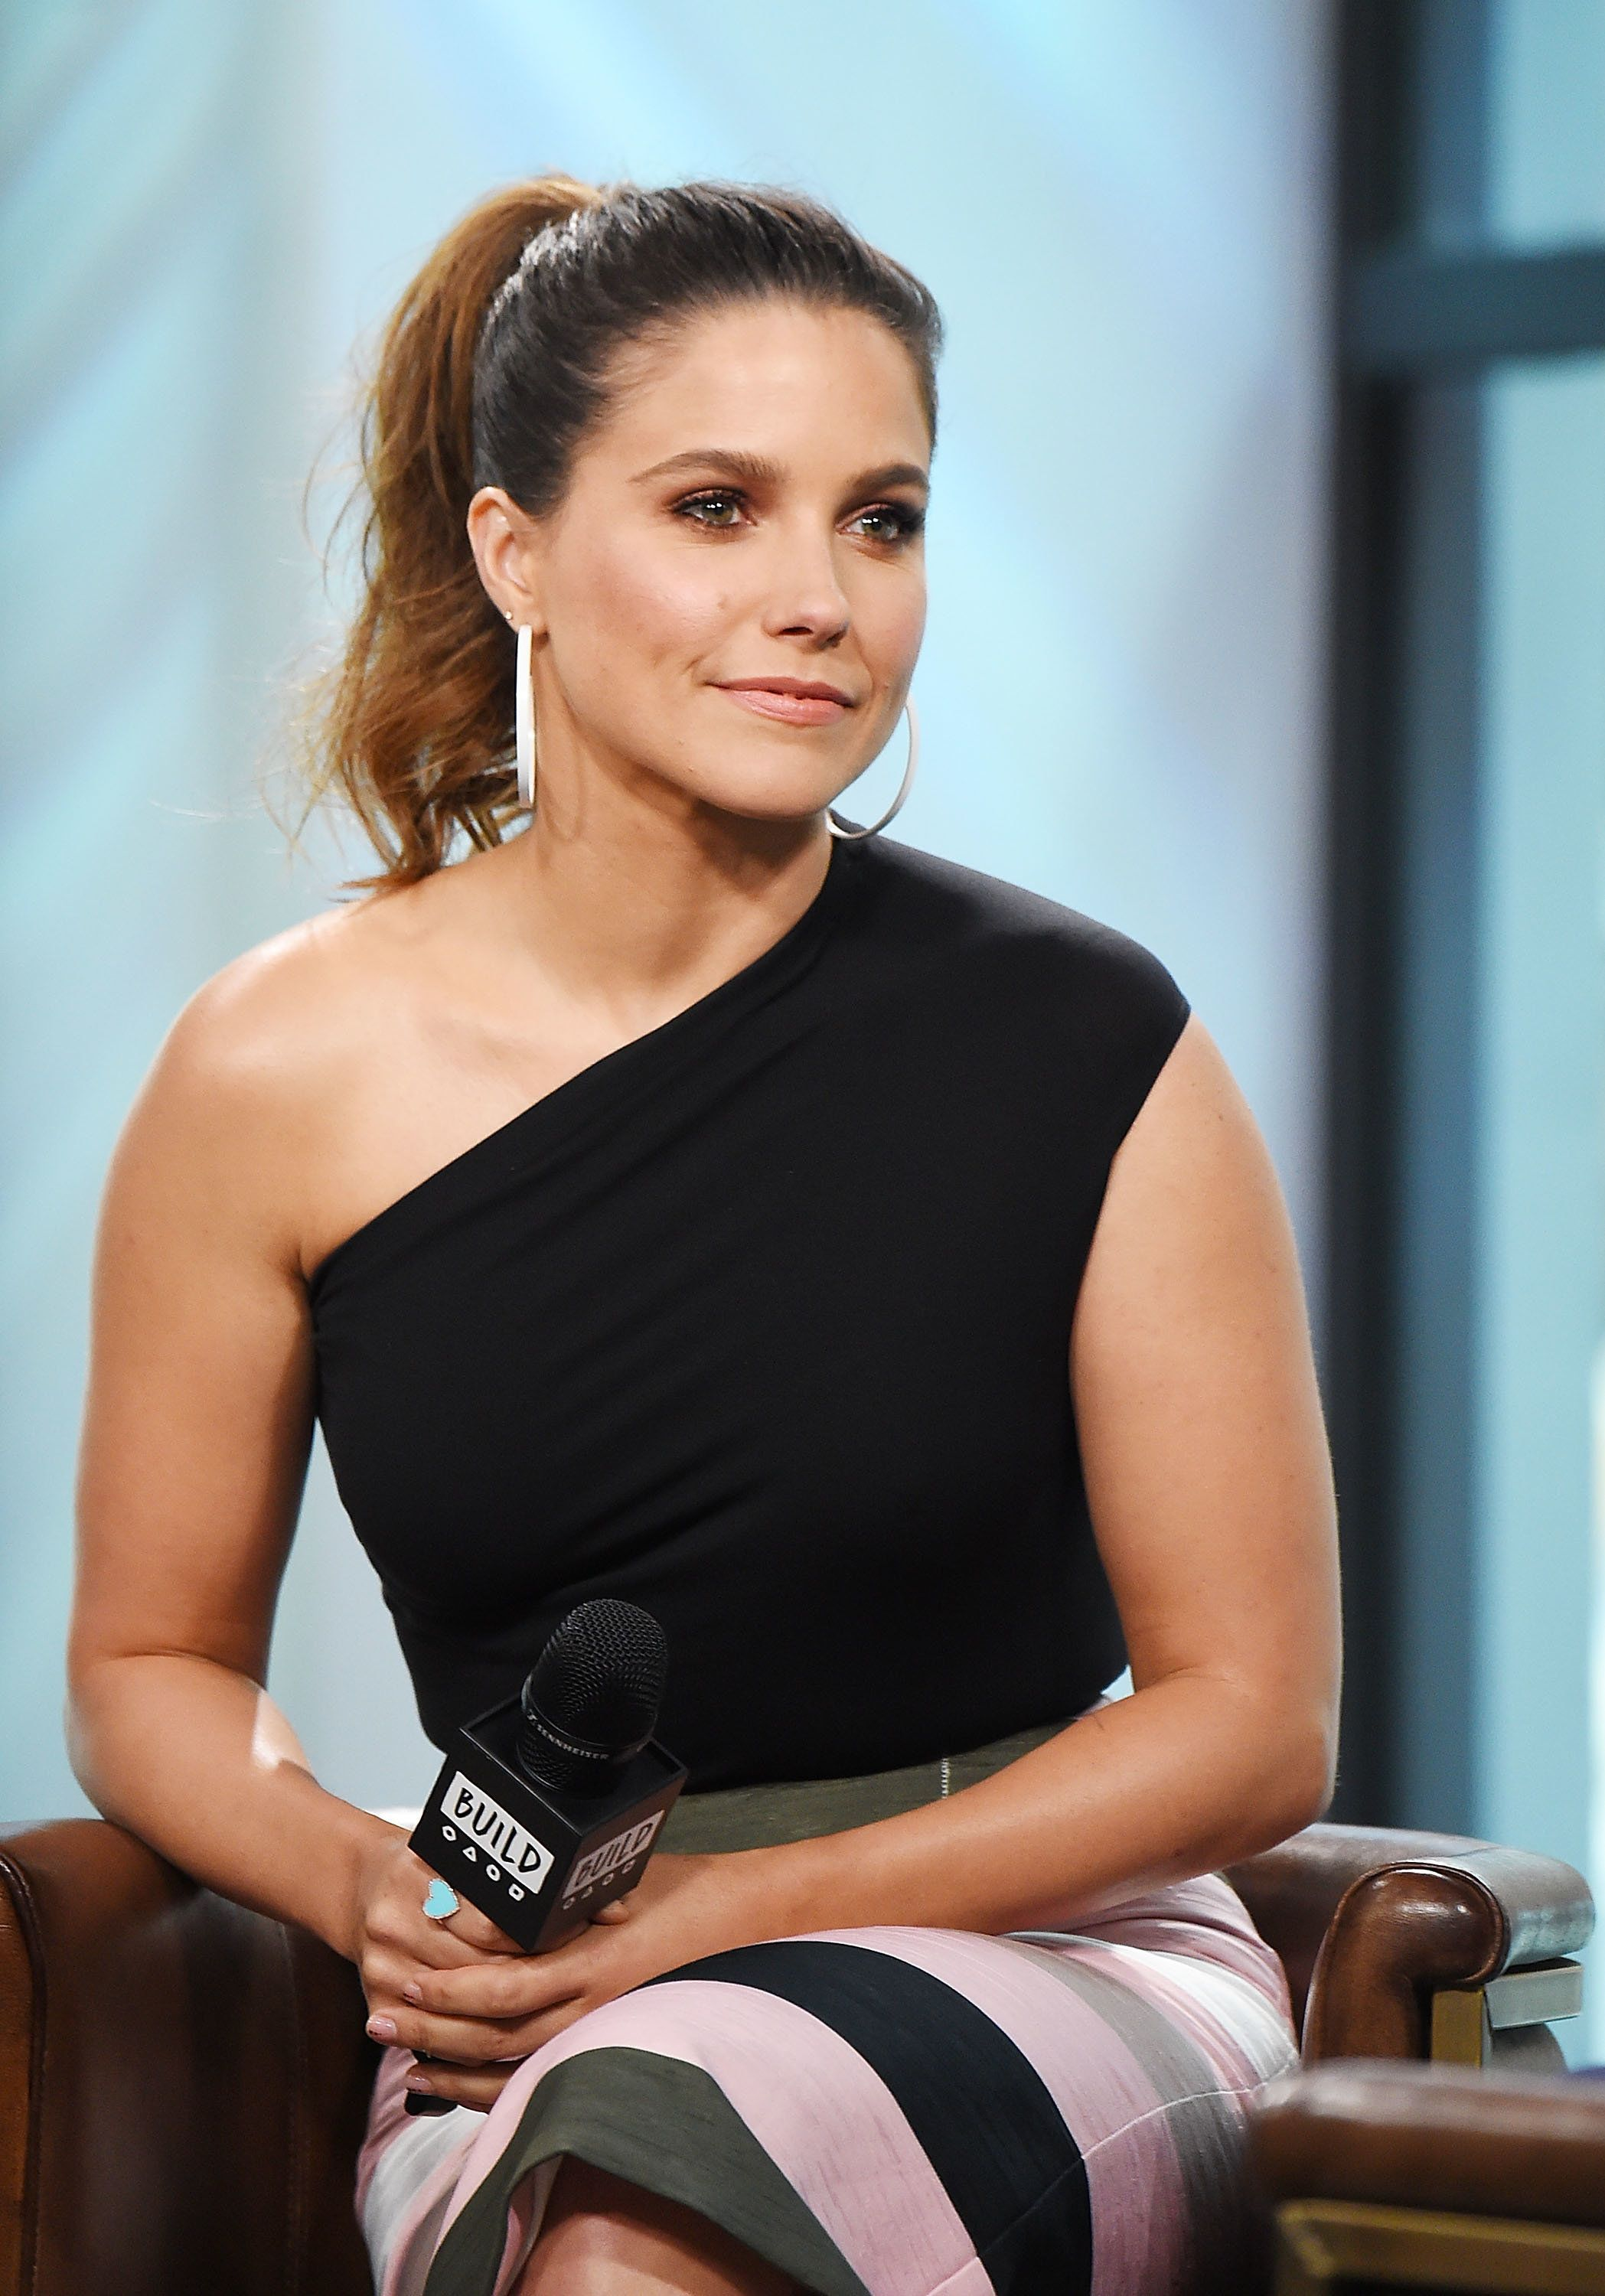 NEW YORK, NY - JULY 13:  Actress Sophia Bush visits the Build Series to discuss The #NoHormonesPlz Initiative at Build Studio on July 13, 2017 in New York City.  (Photo by Michael Loccisano/Getty Images)